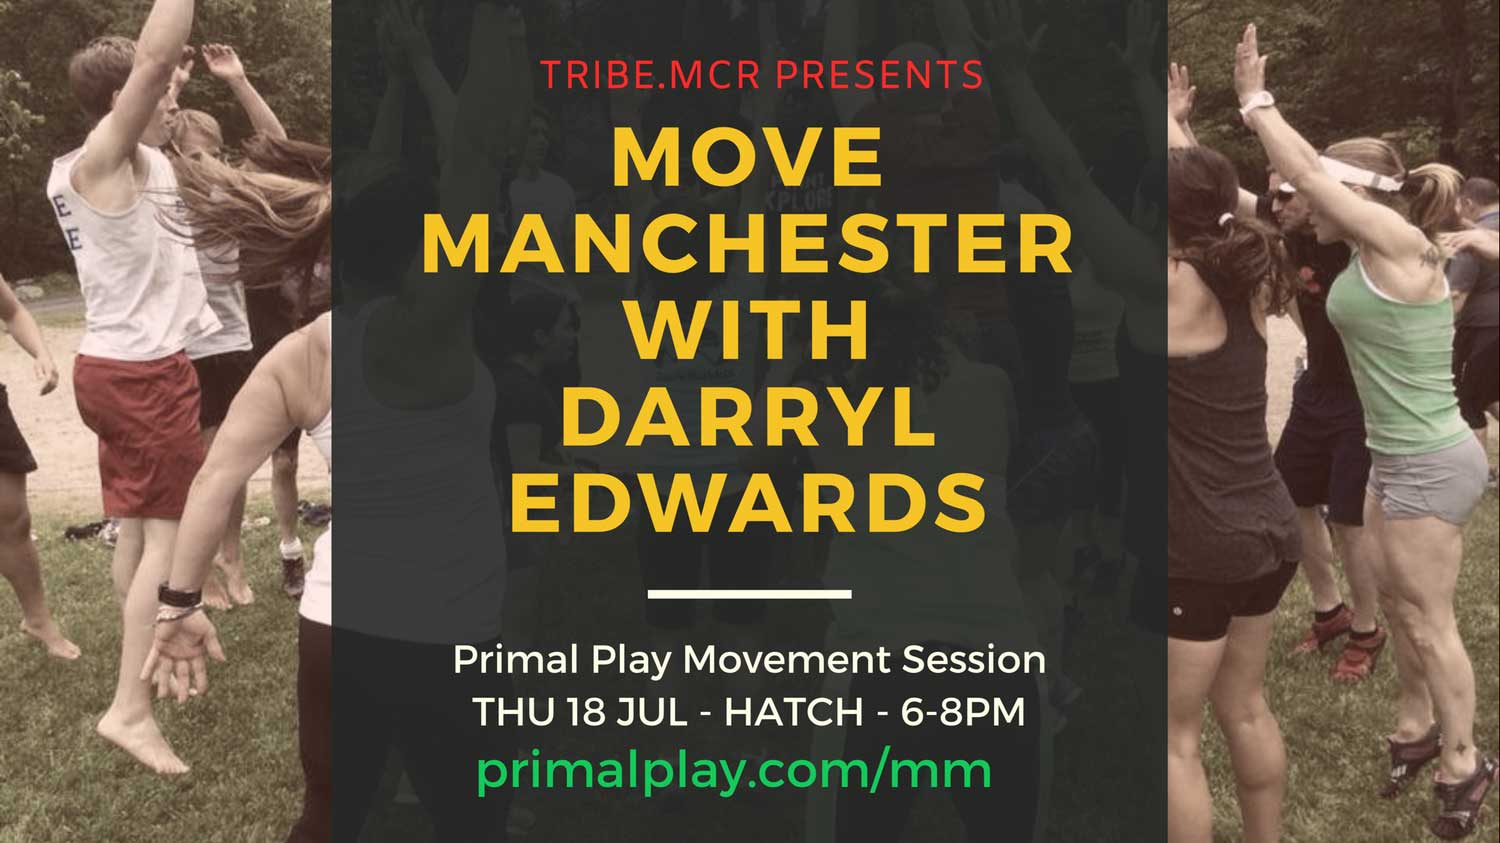 Tribe.mcr presents Move Manchester with Darryl Edwards